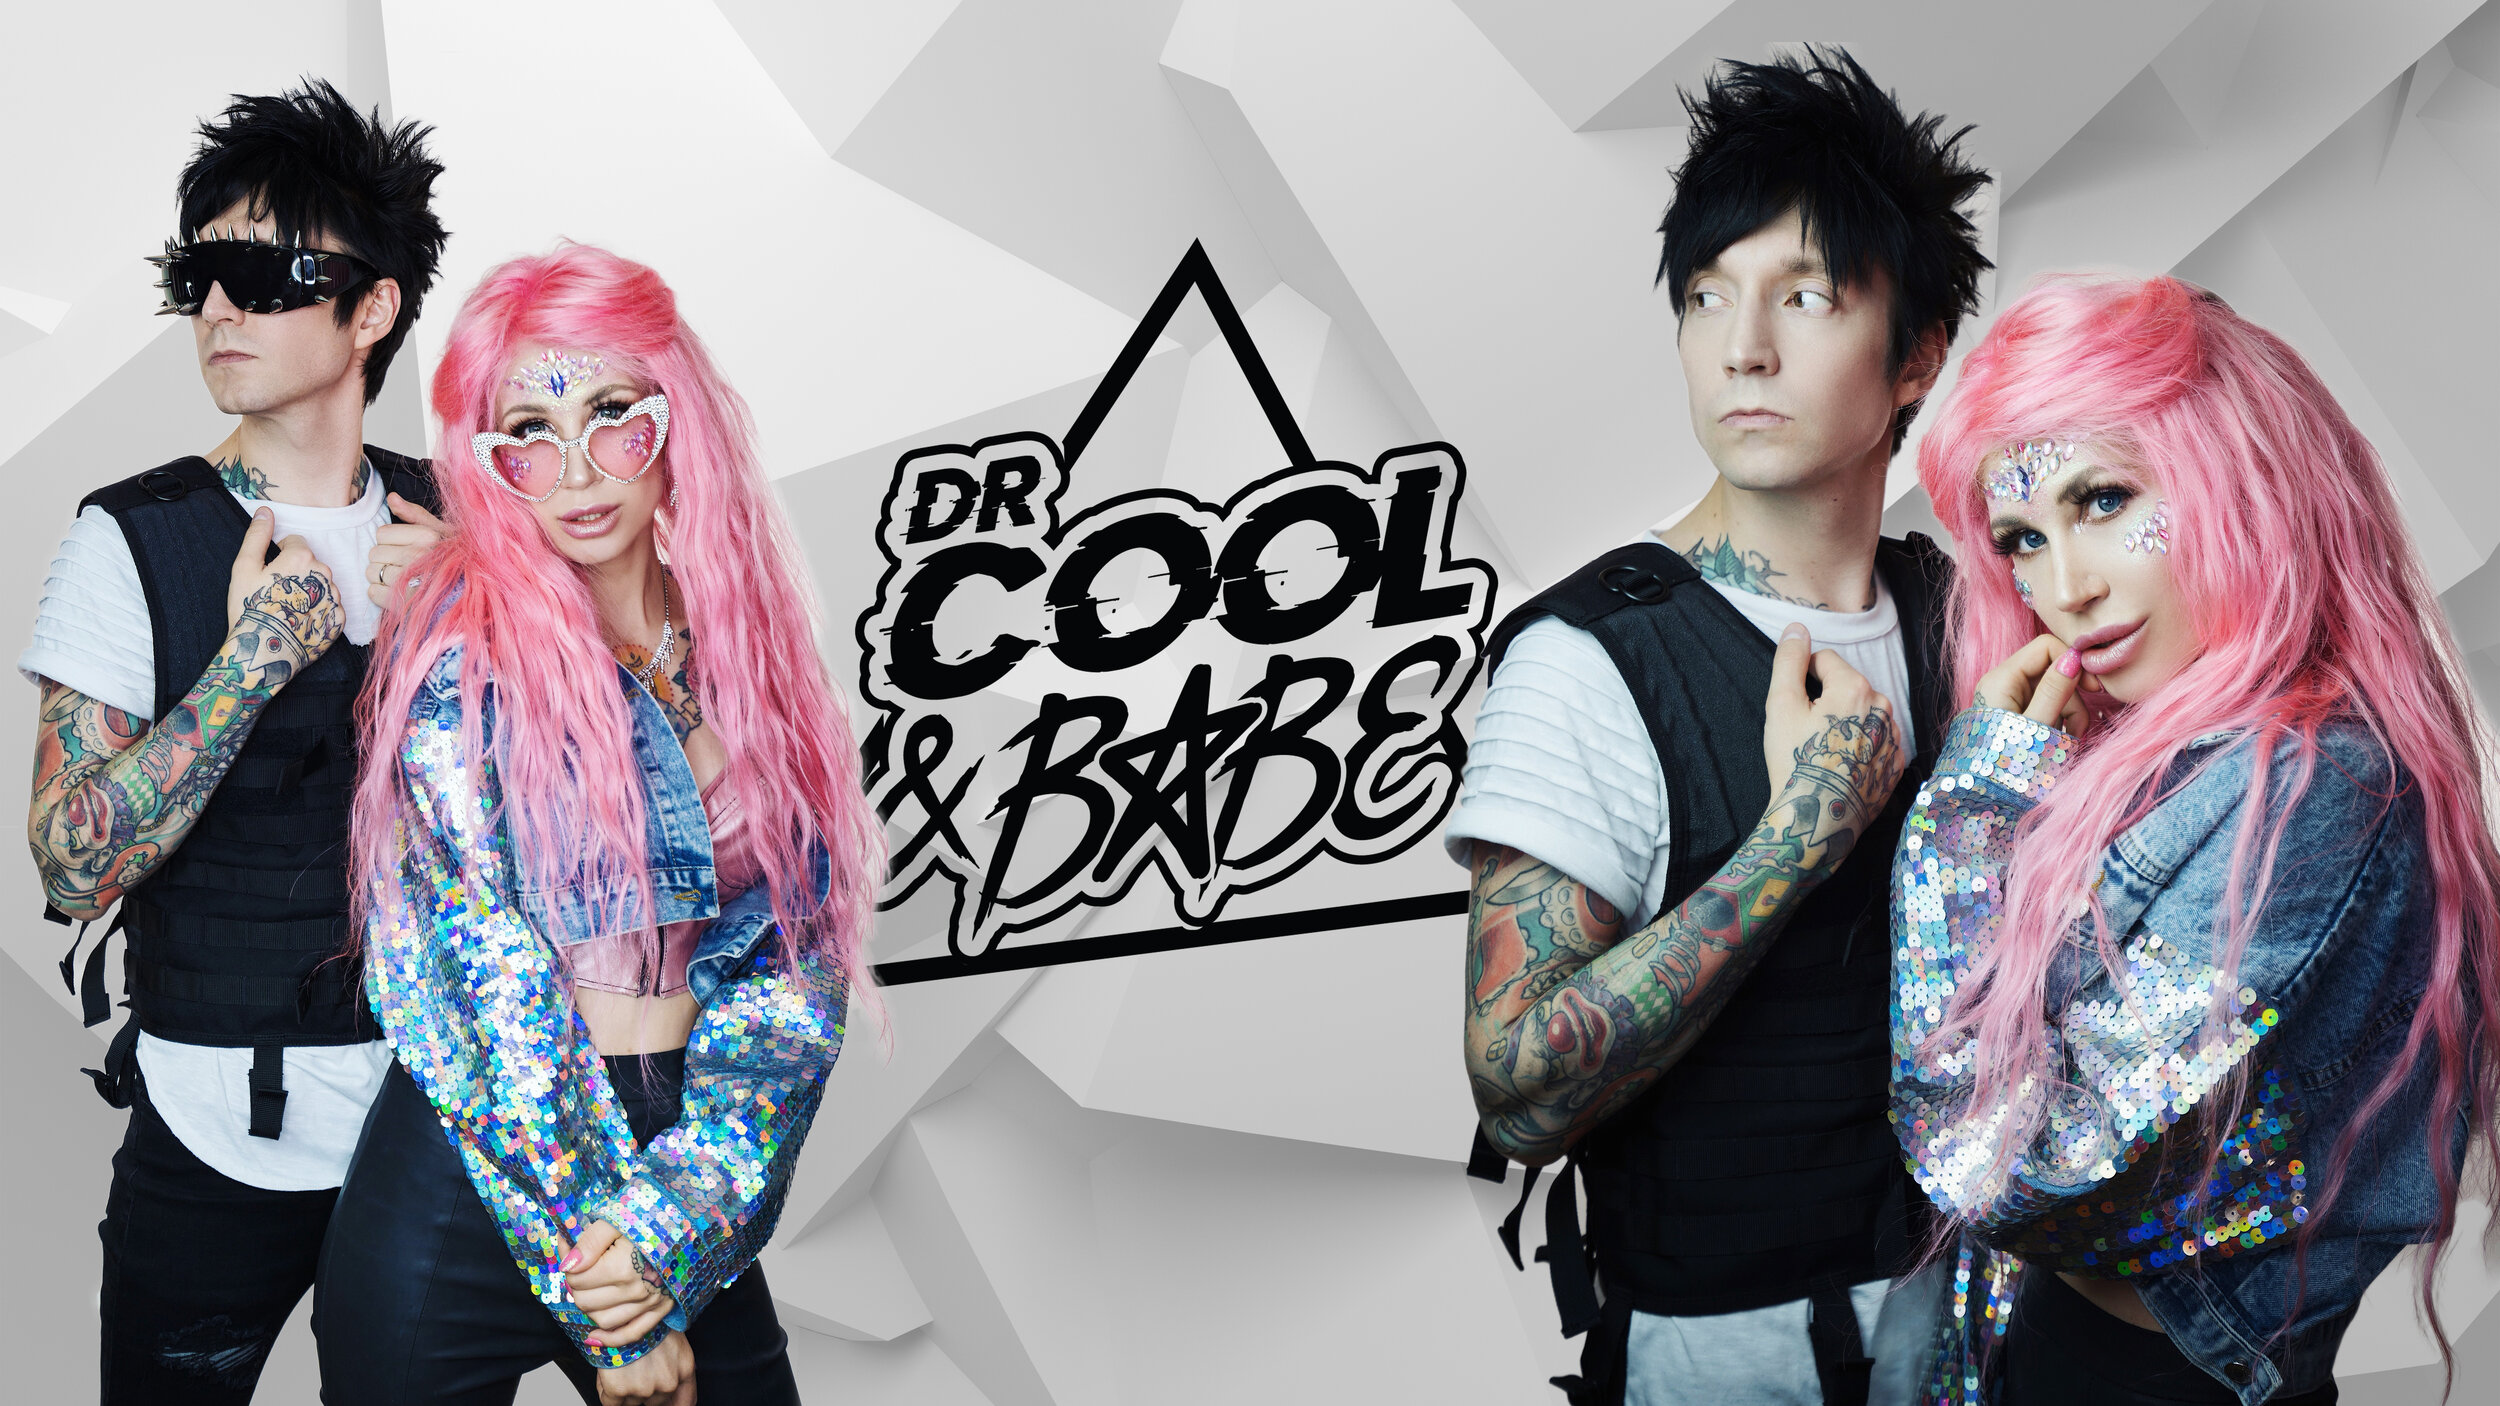 DR COOL AND BABE HEADER.JPG